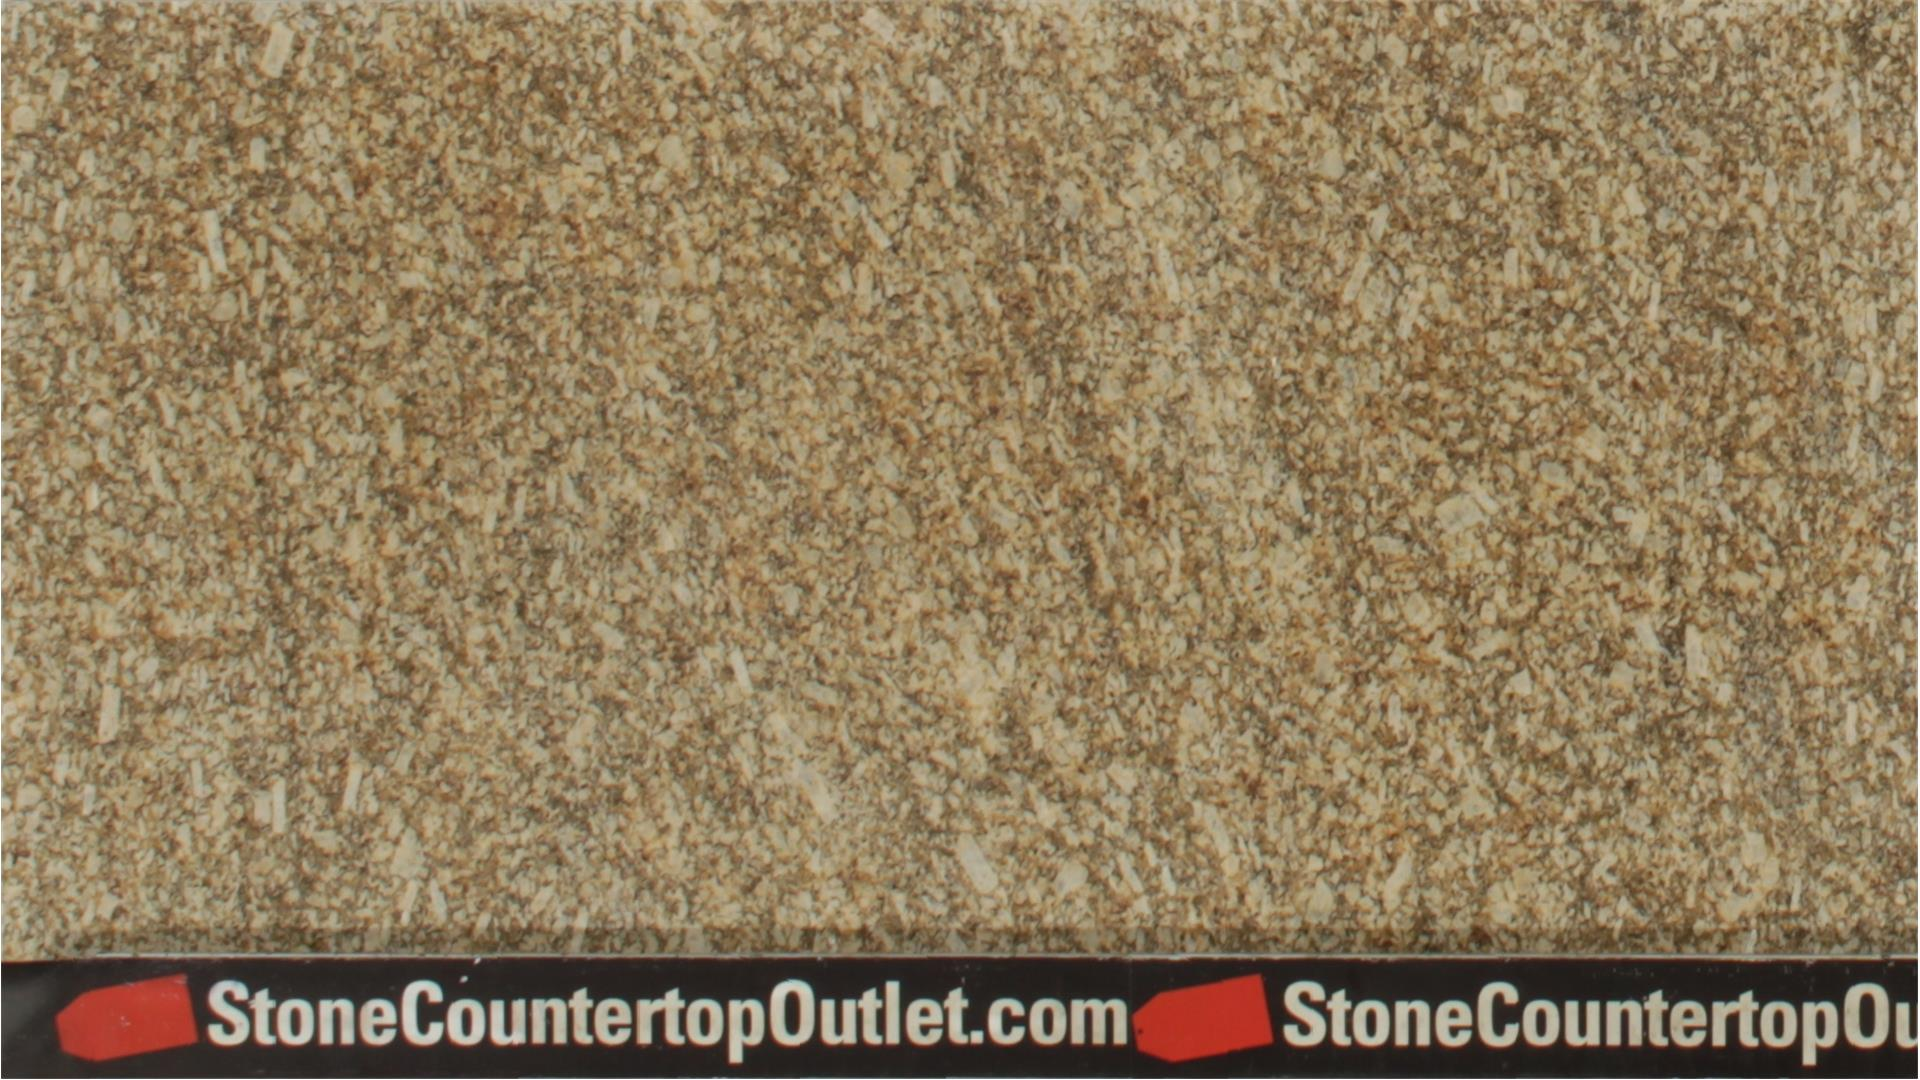 Slabs Stone Countertop Outlet